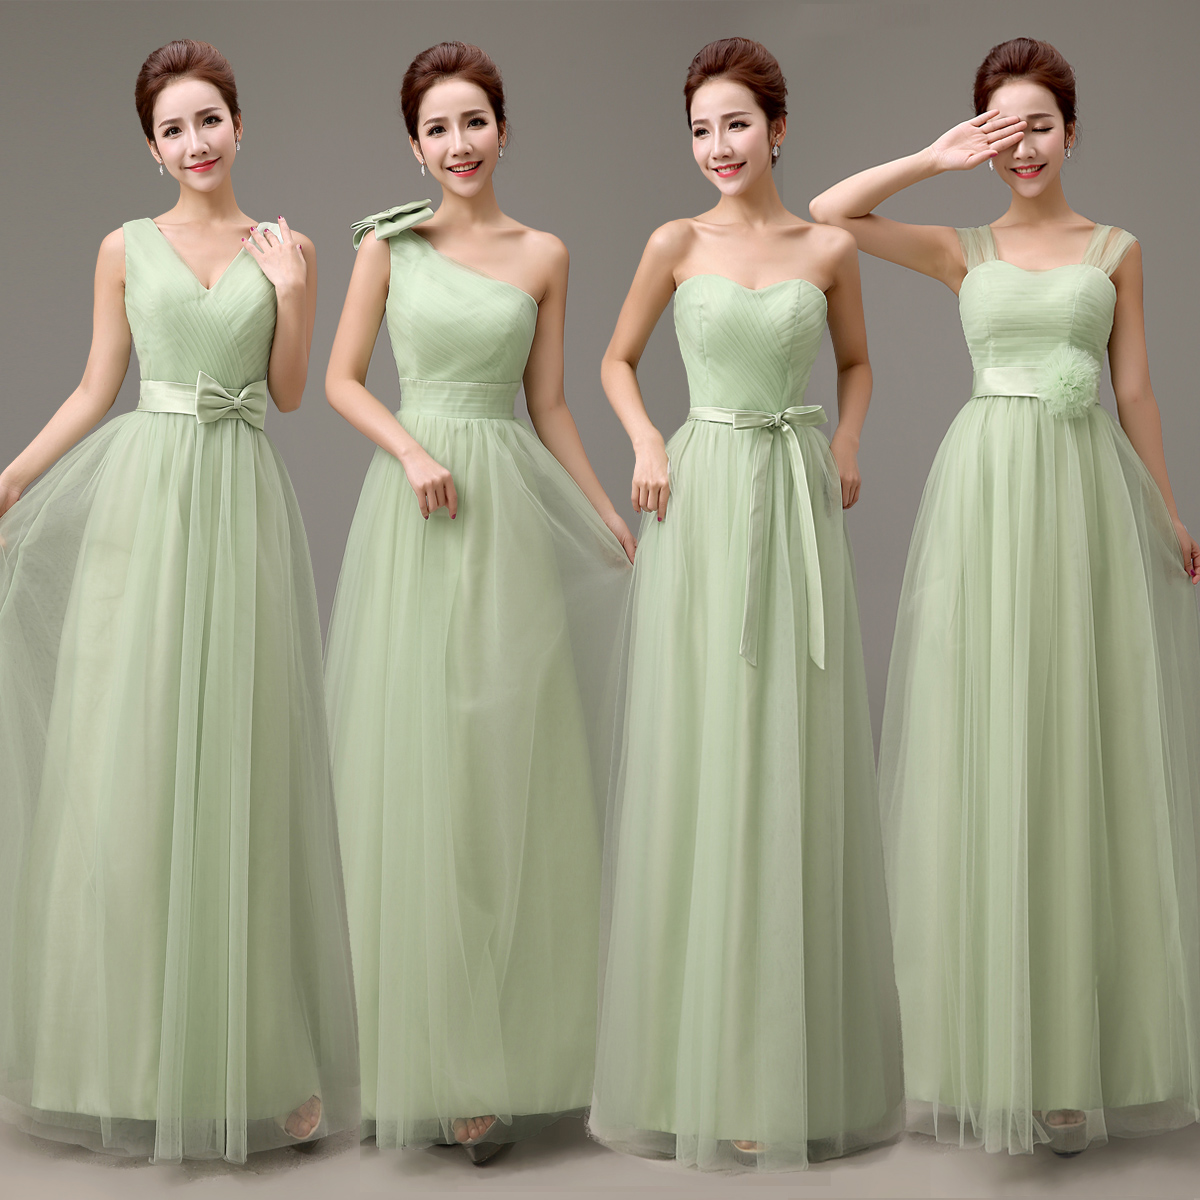 Compare Prices on Sage Green Bridesmaid Dress- Online Shopping/Buy ...